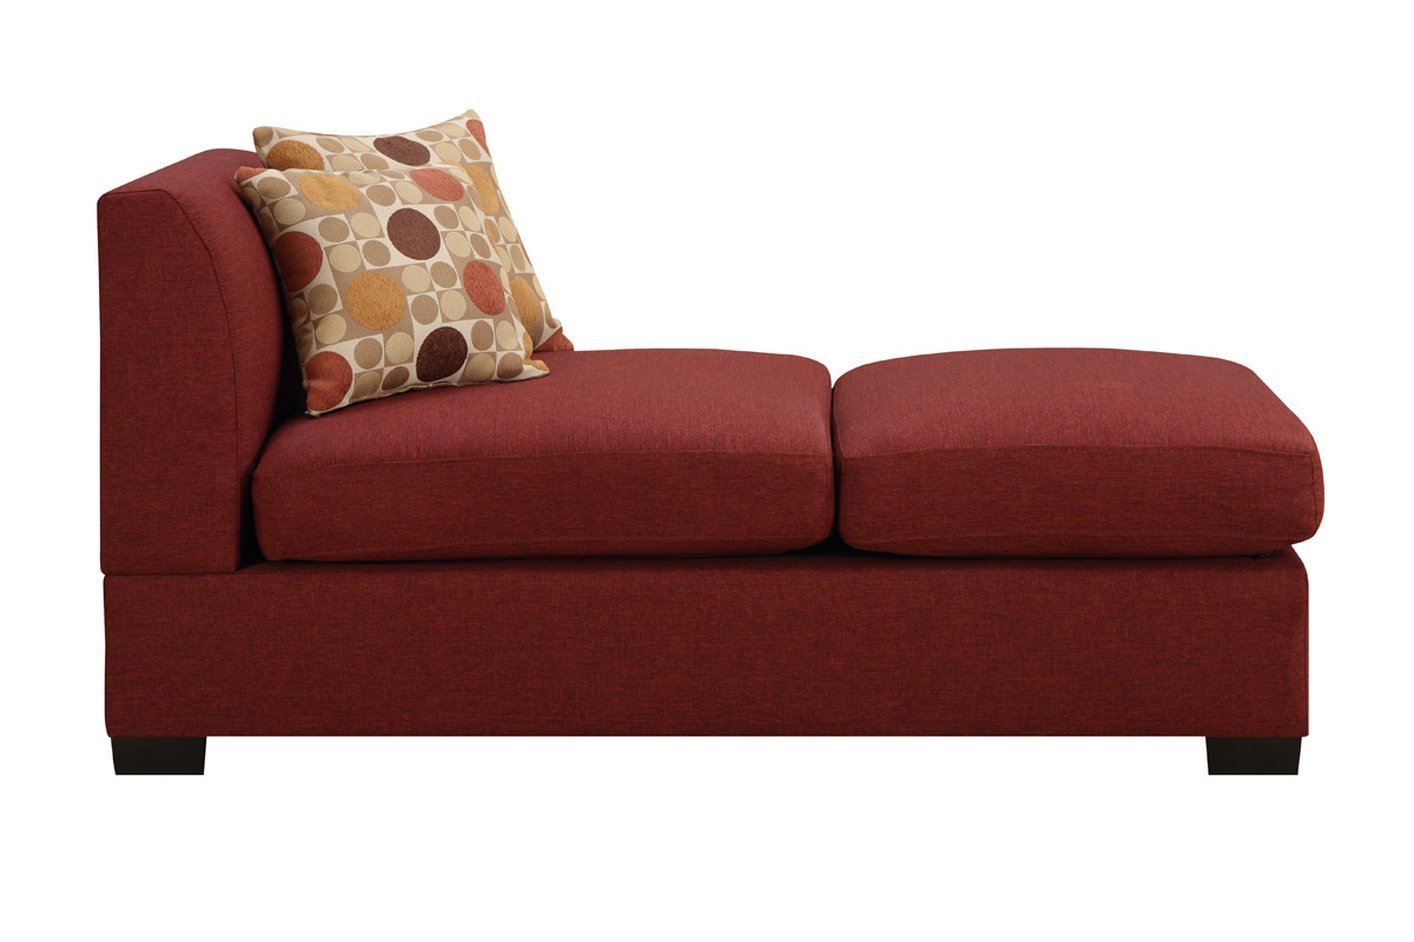 Red Fabric Chaise Lounge